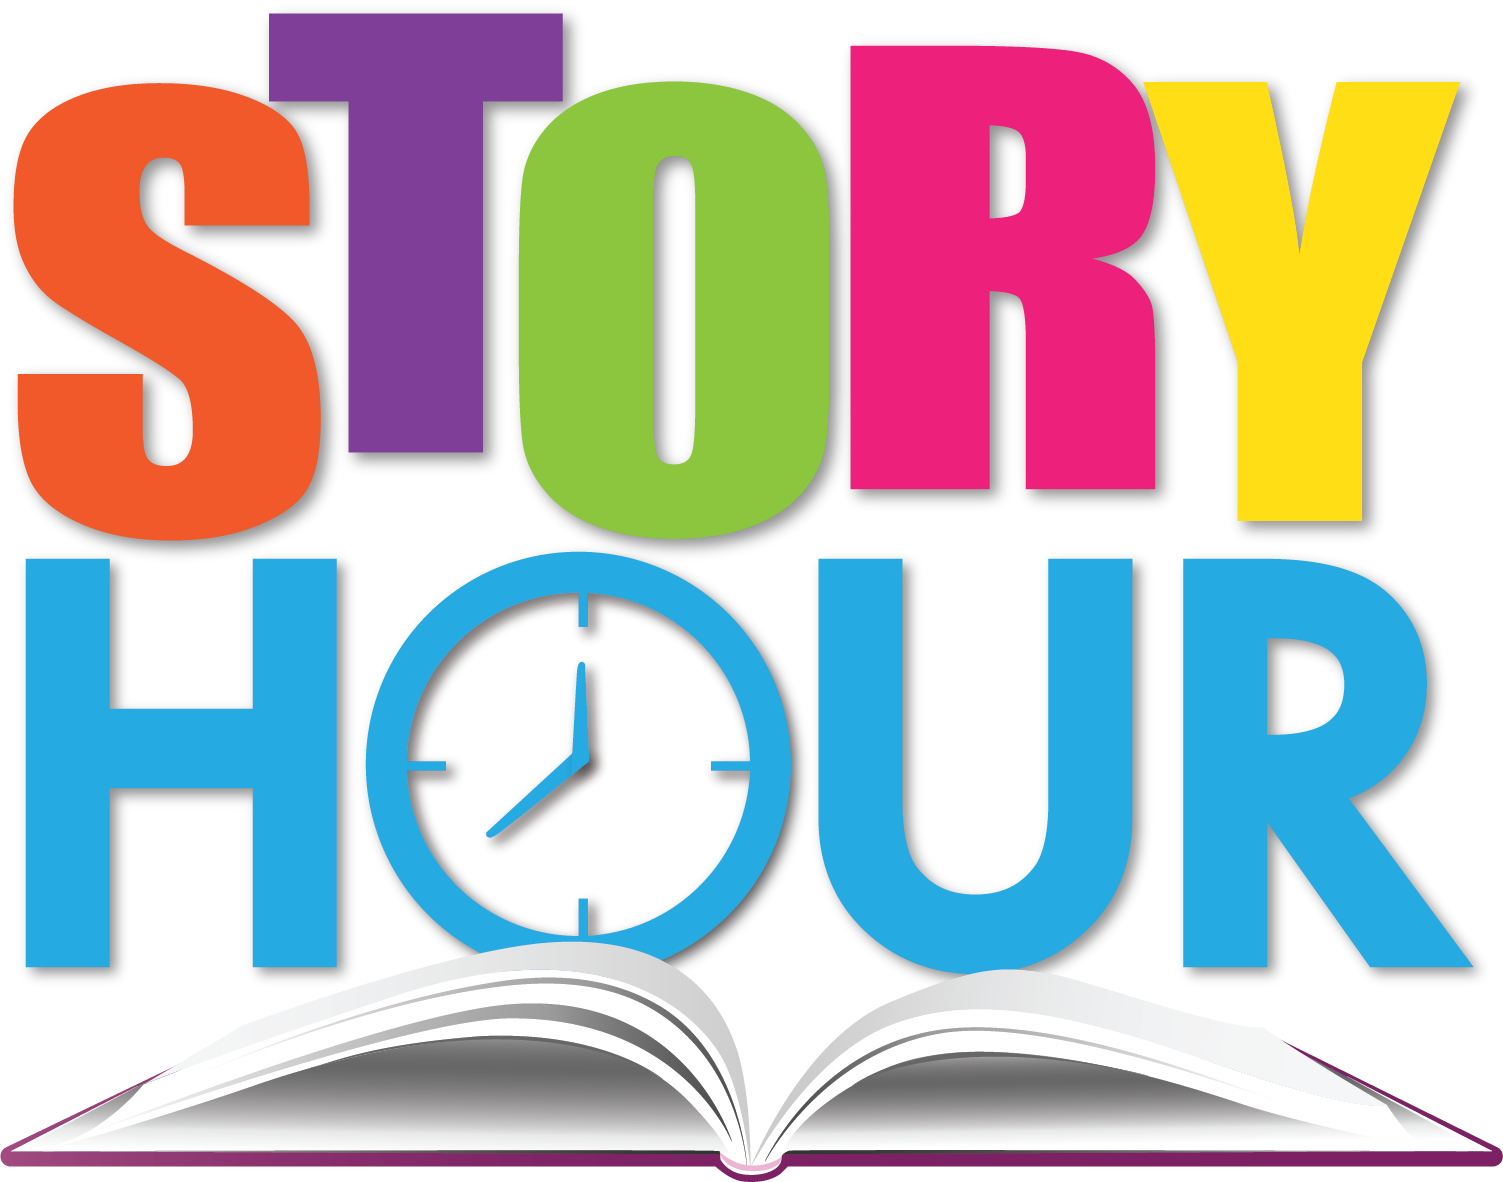 Story clipart story hour. Time begins wednesday september